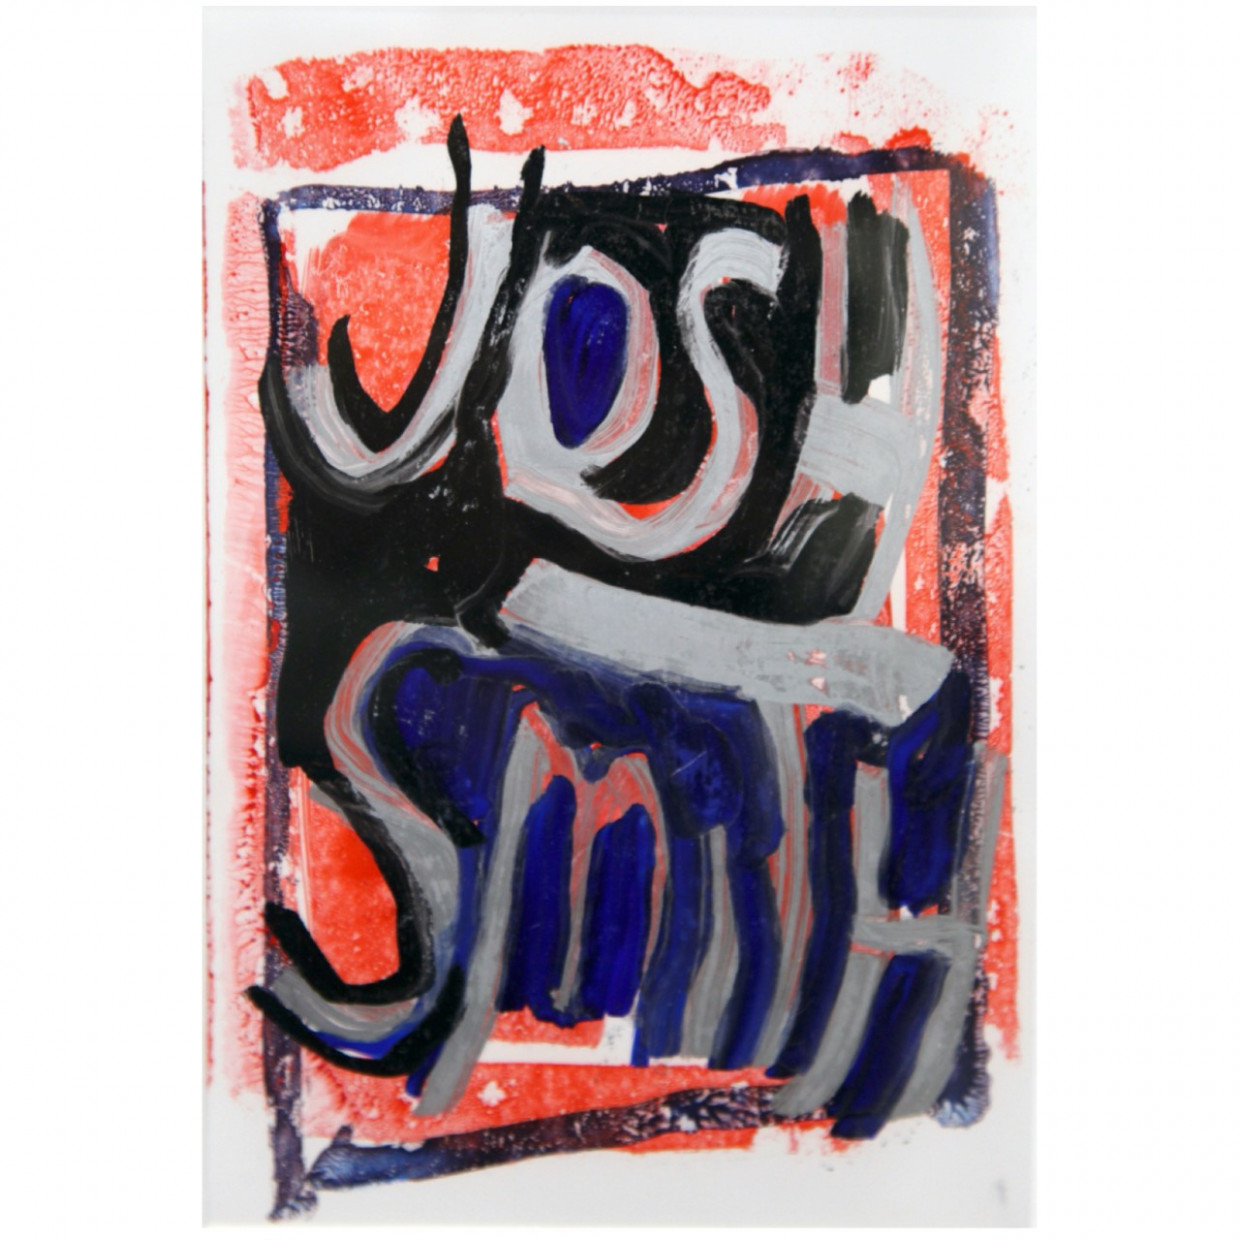 Josh Smith exhibition